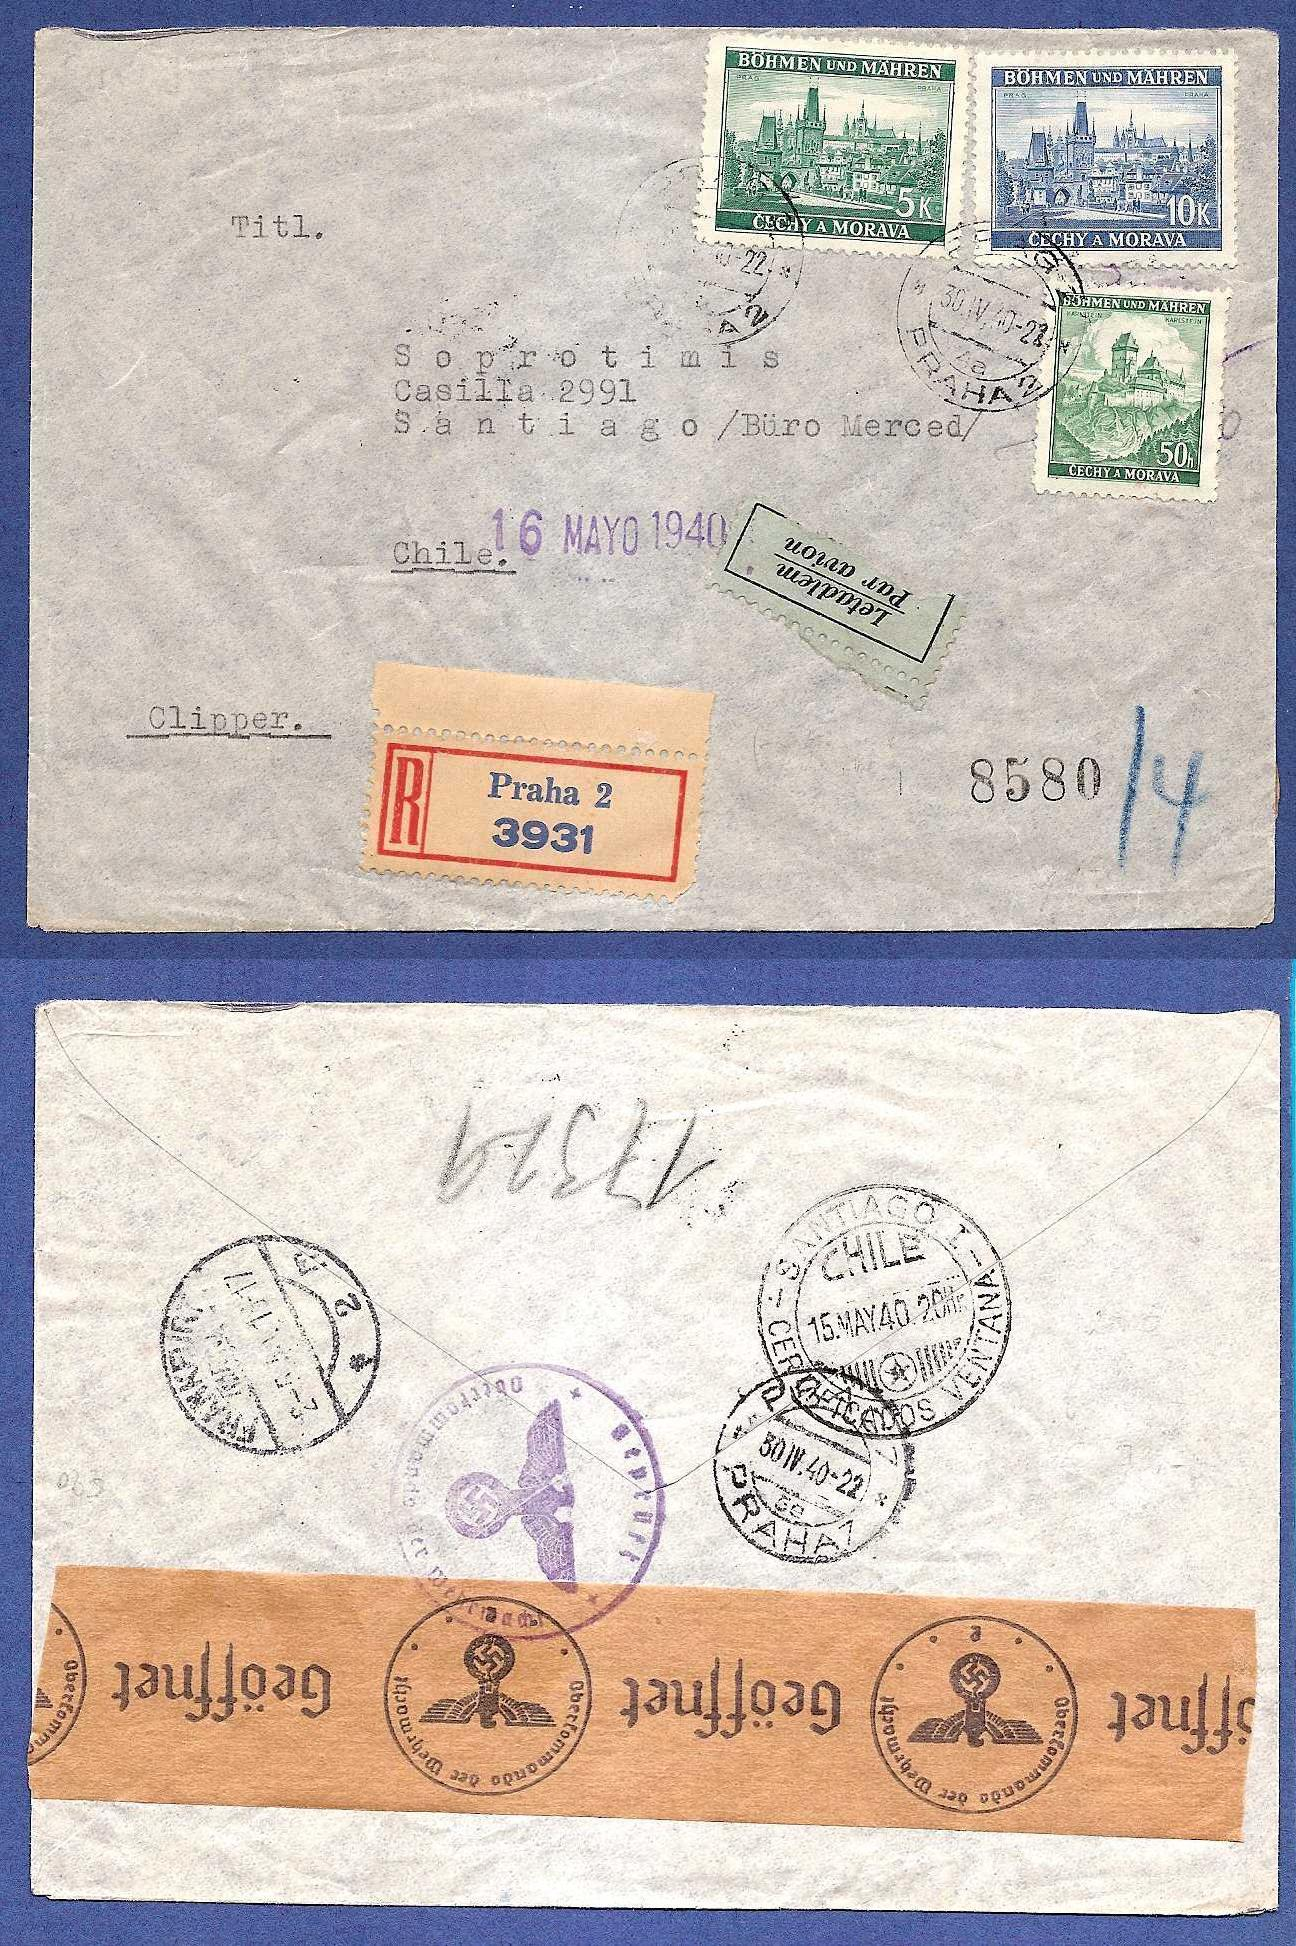 BOHEMEN MORAVIA R-airmail cover 1940 to Chile HE004